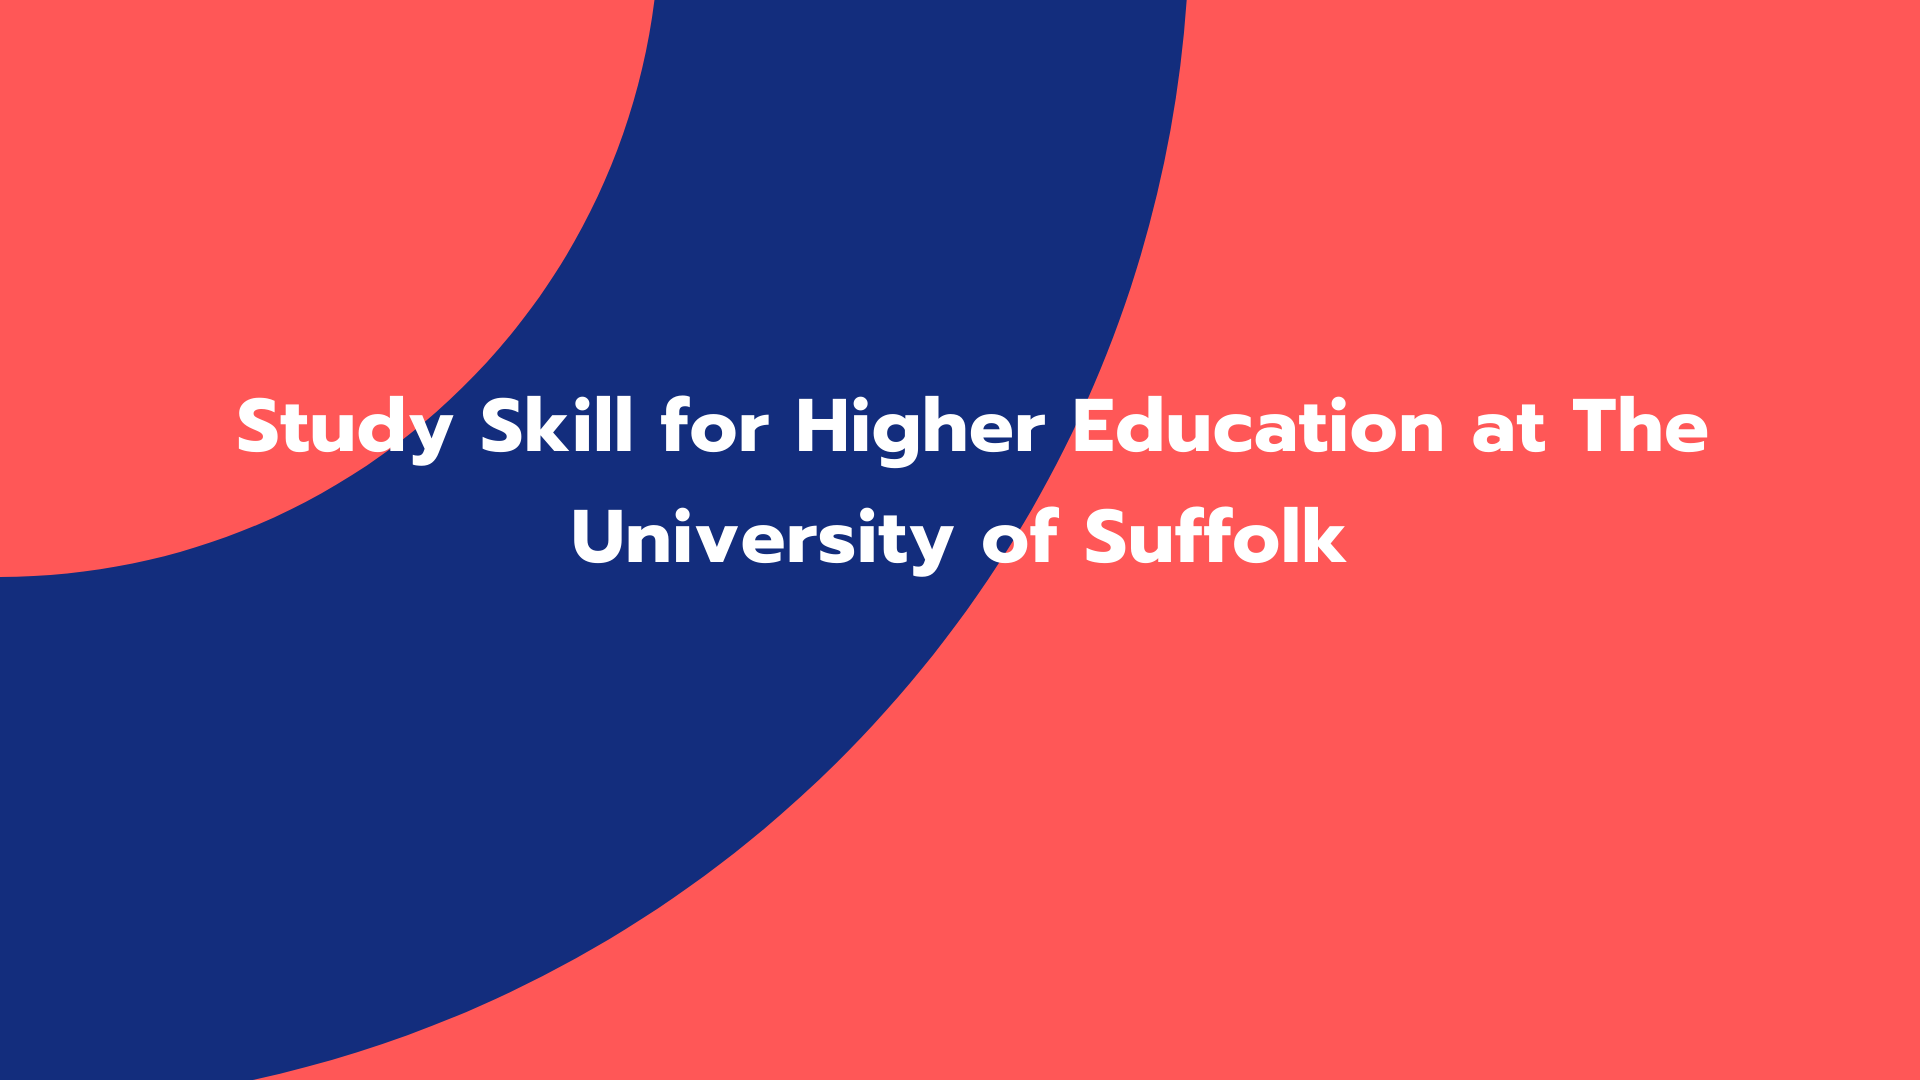 Study Skill for Higher Education at The University of Suffolk